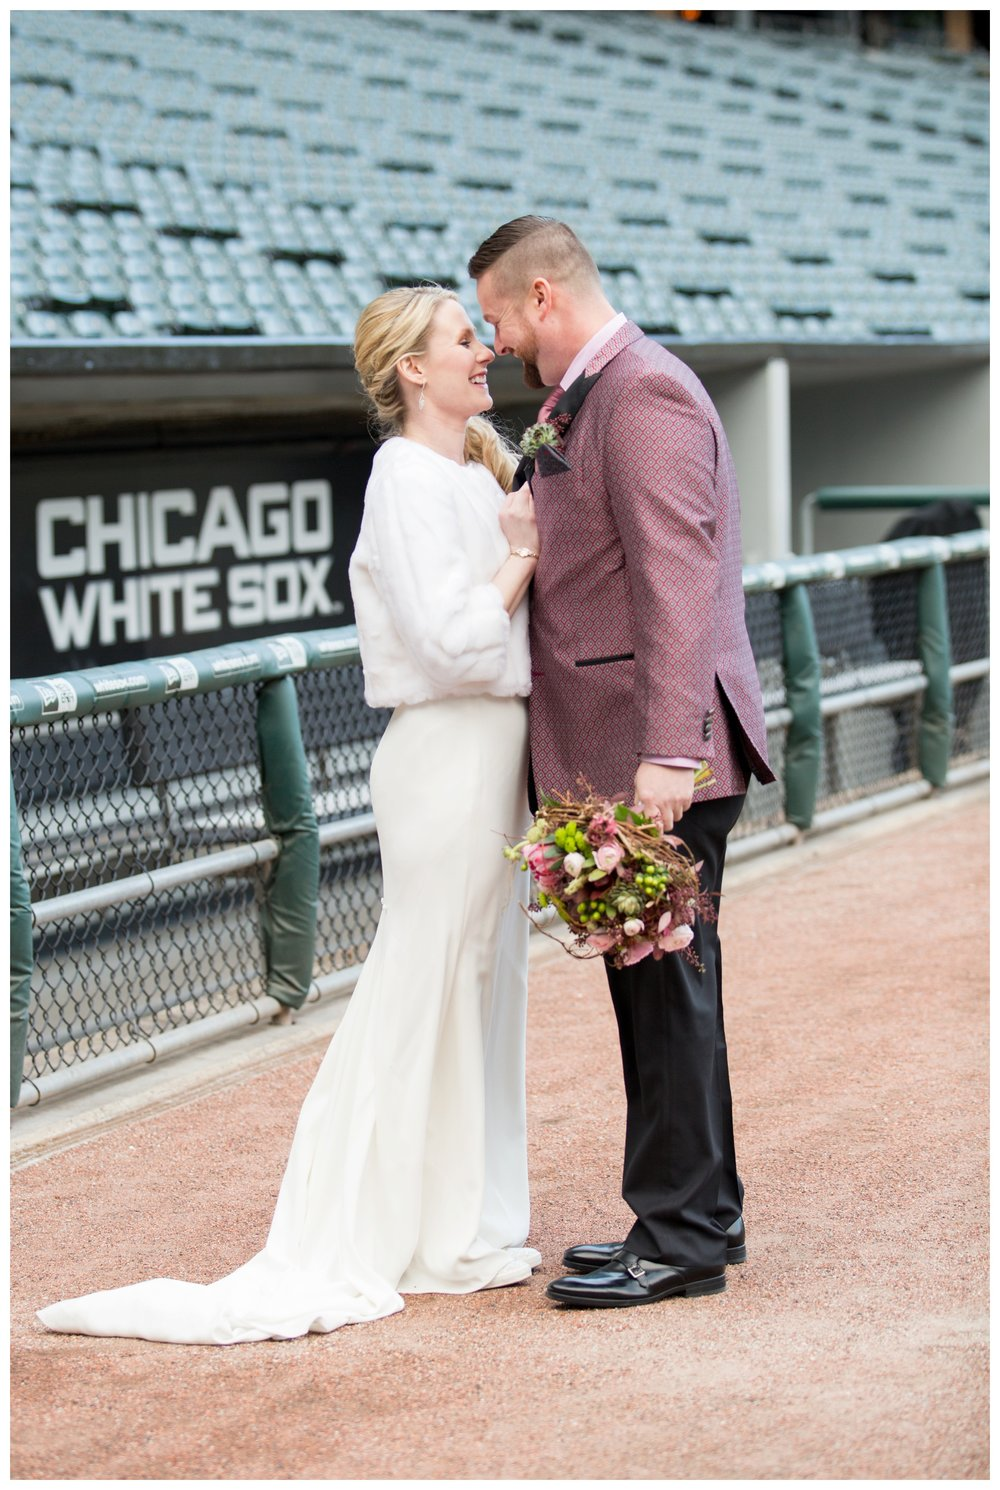 weddings-at-guaranteed-rate-field-chicago